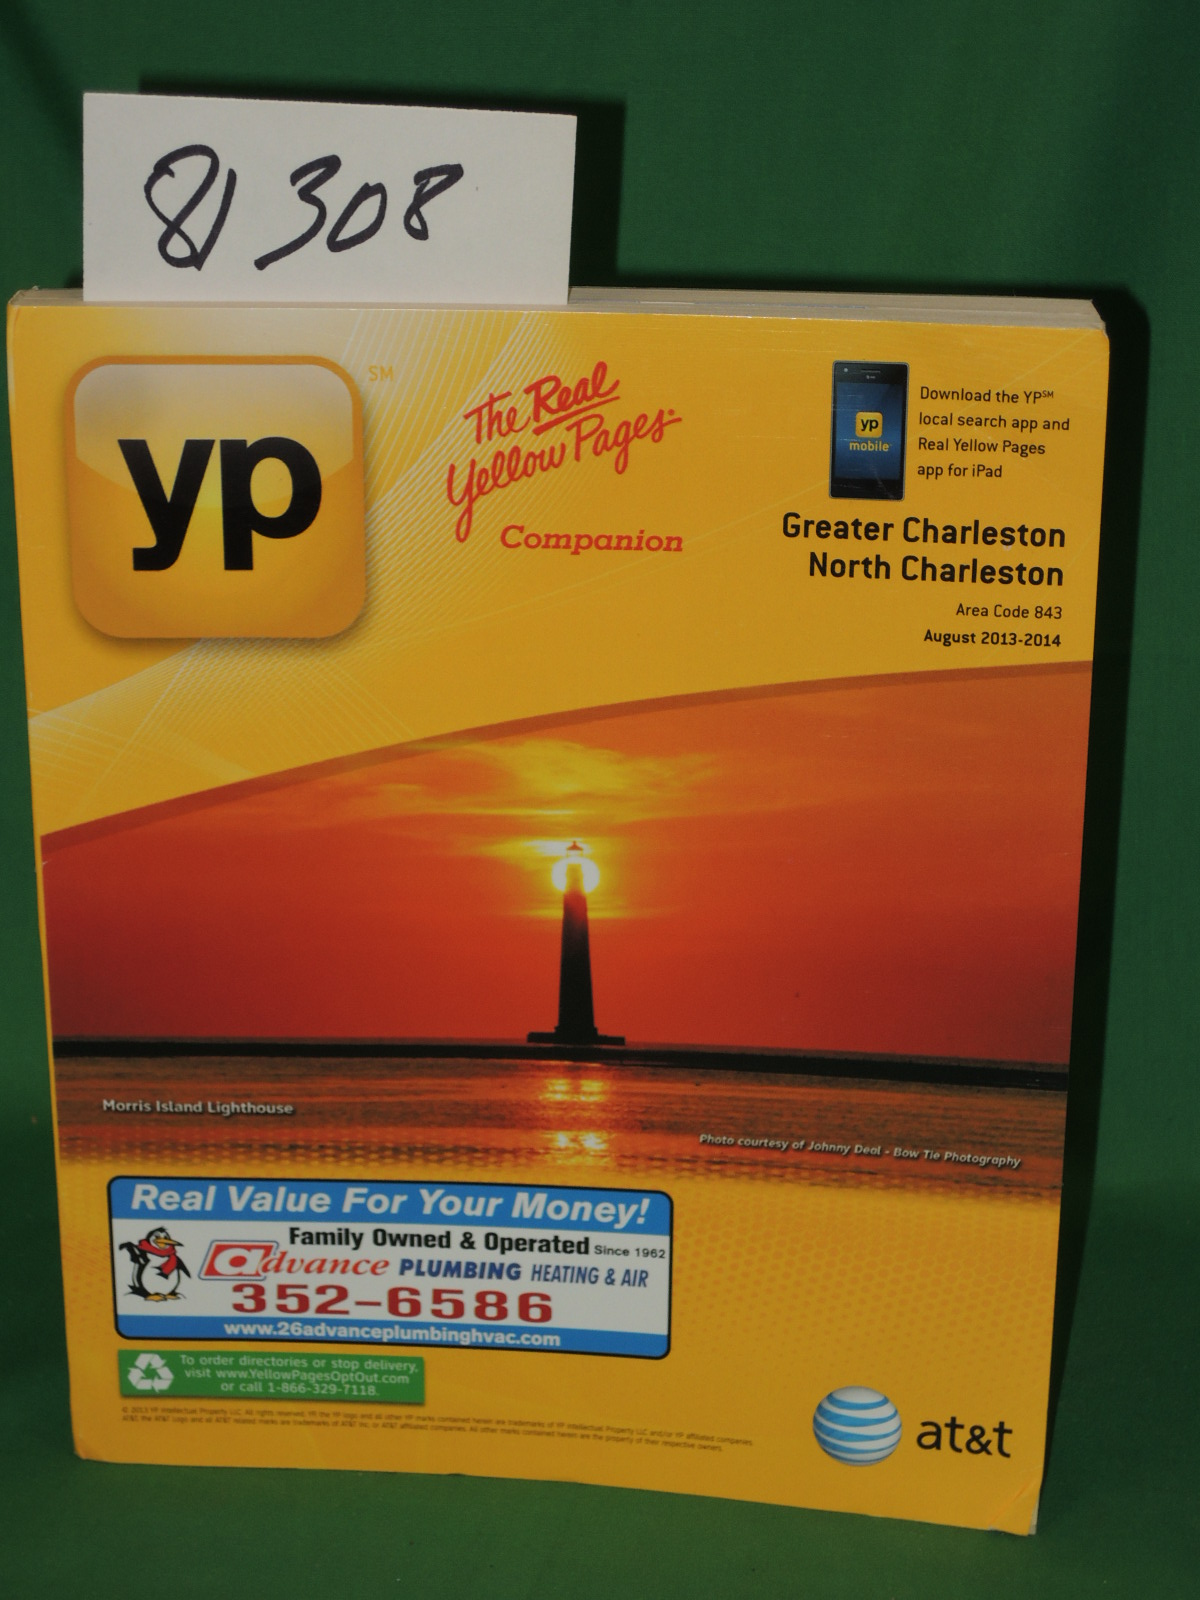 Yellow Pages: YP The Real Yellow Pages Companion Greater Charles